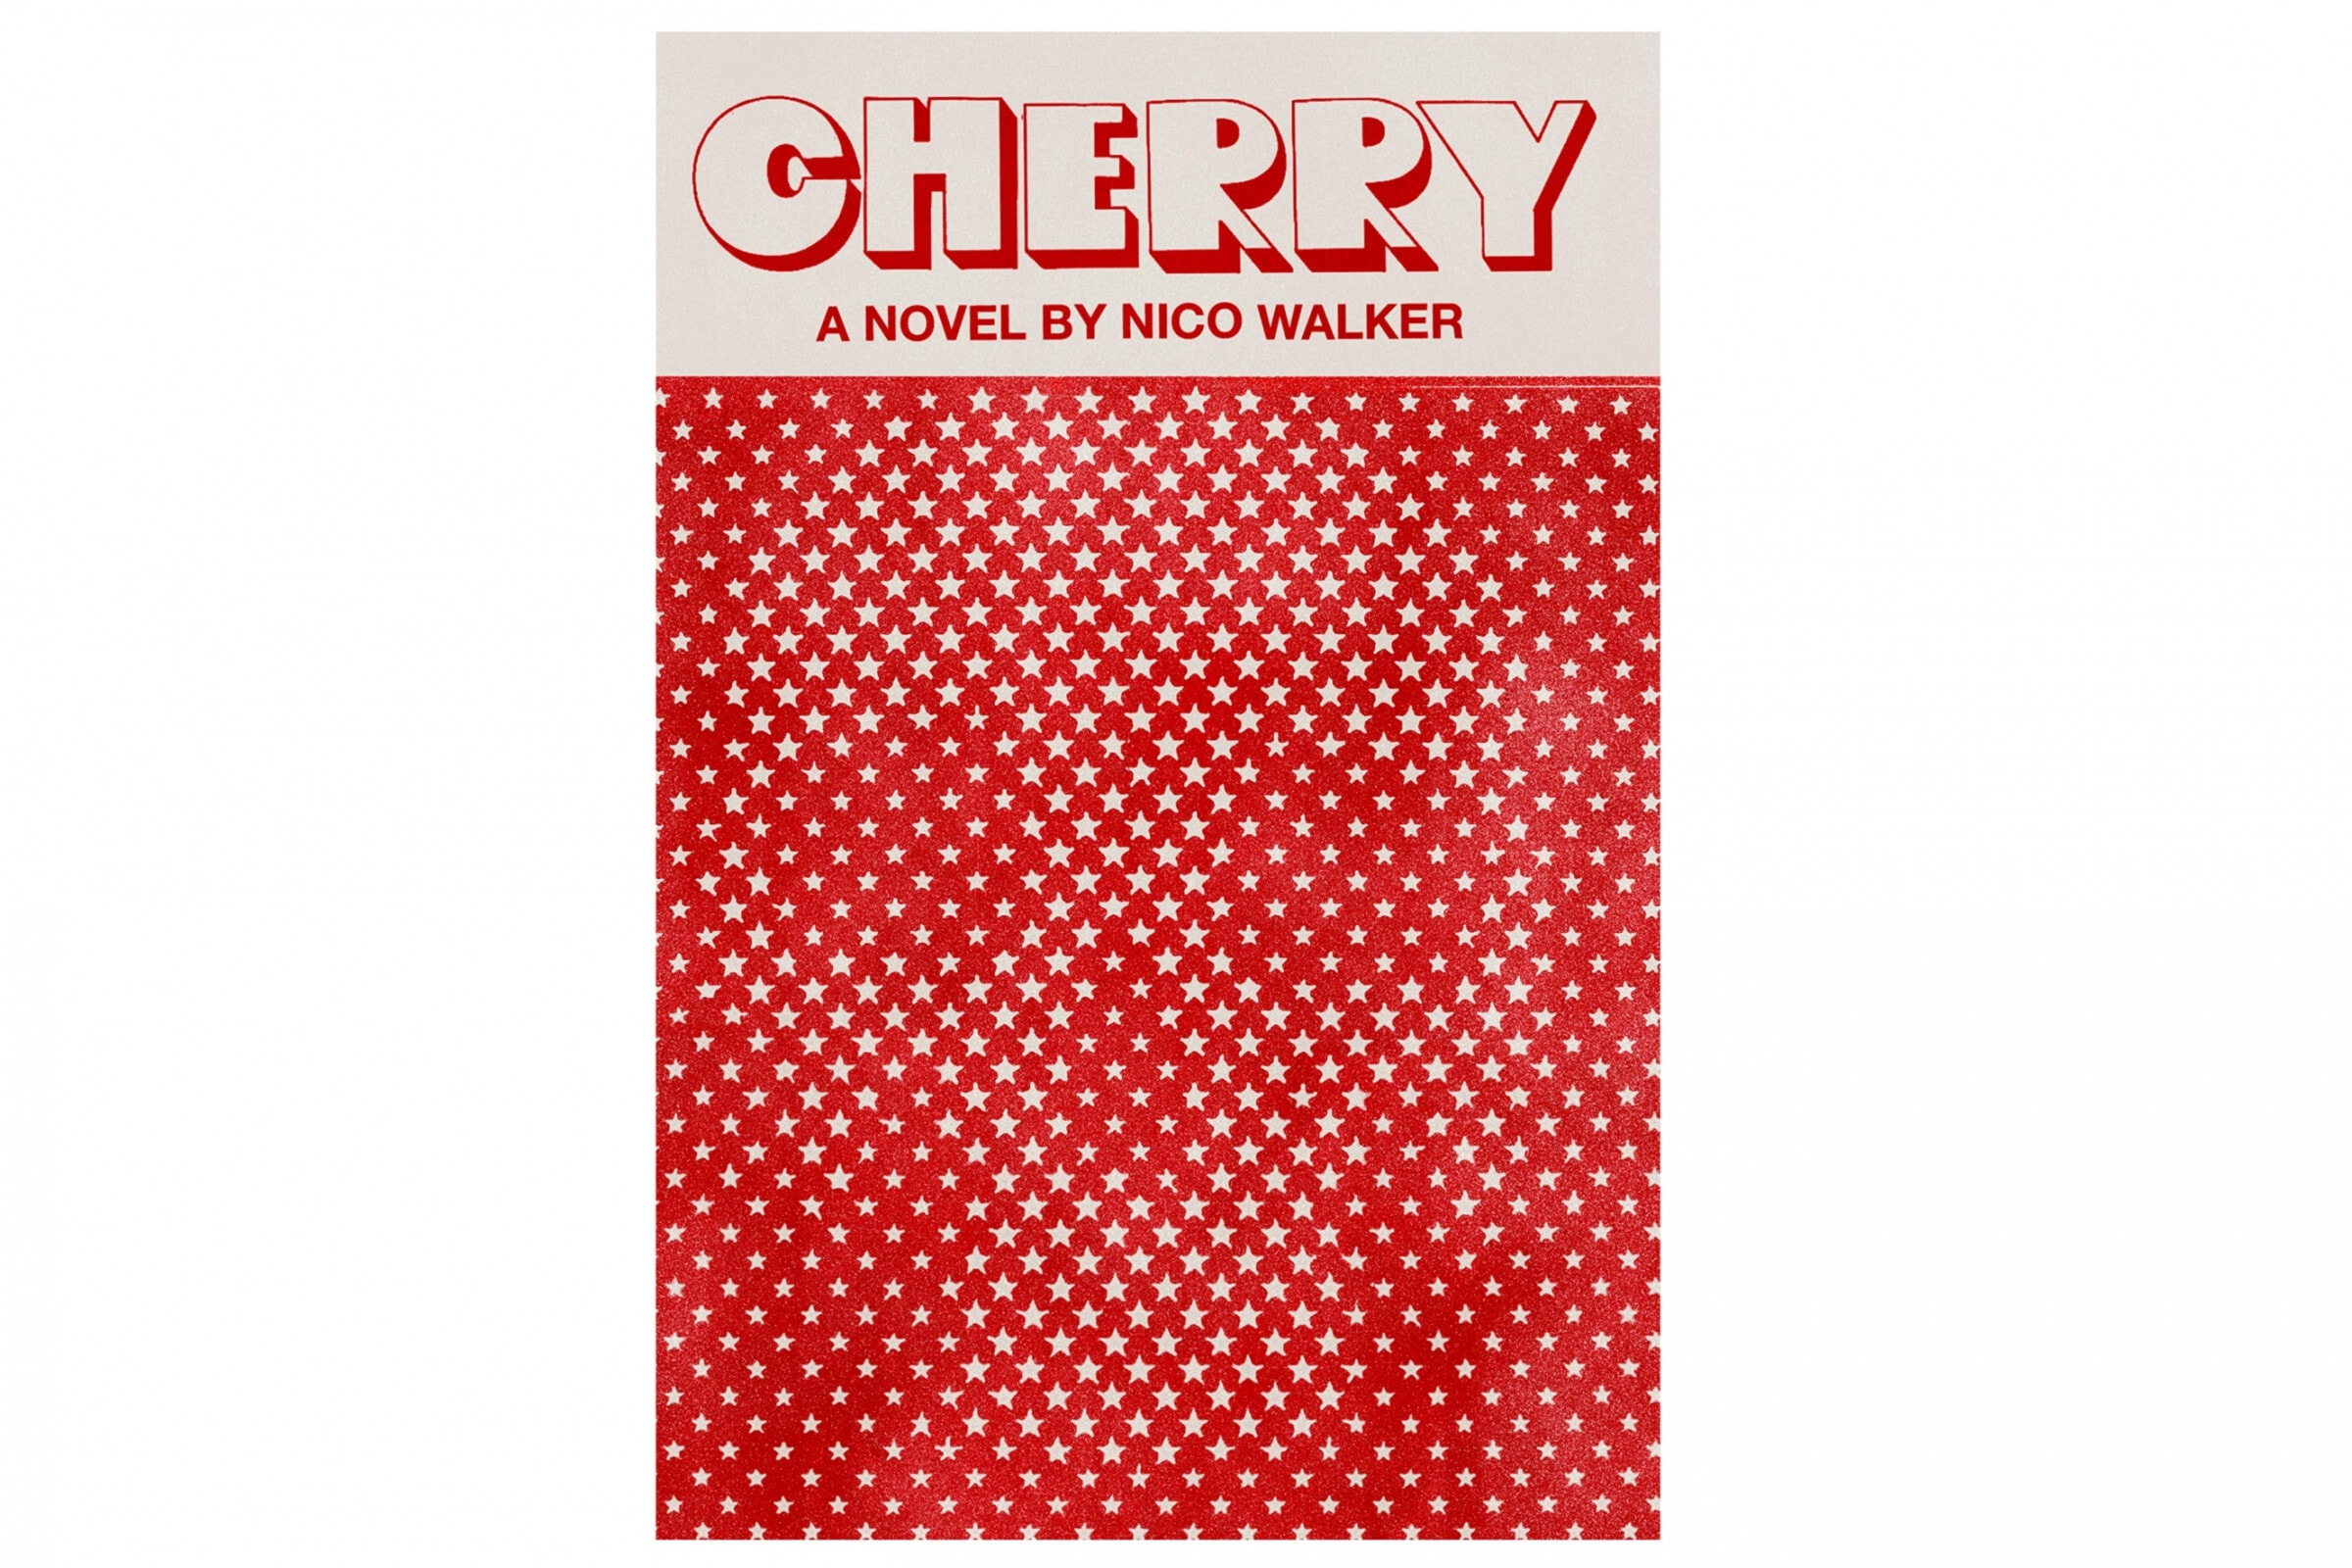 Books to read to kick your New Year off right 'Cherry'